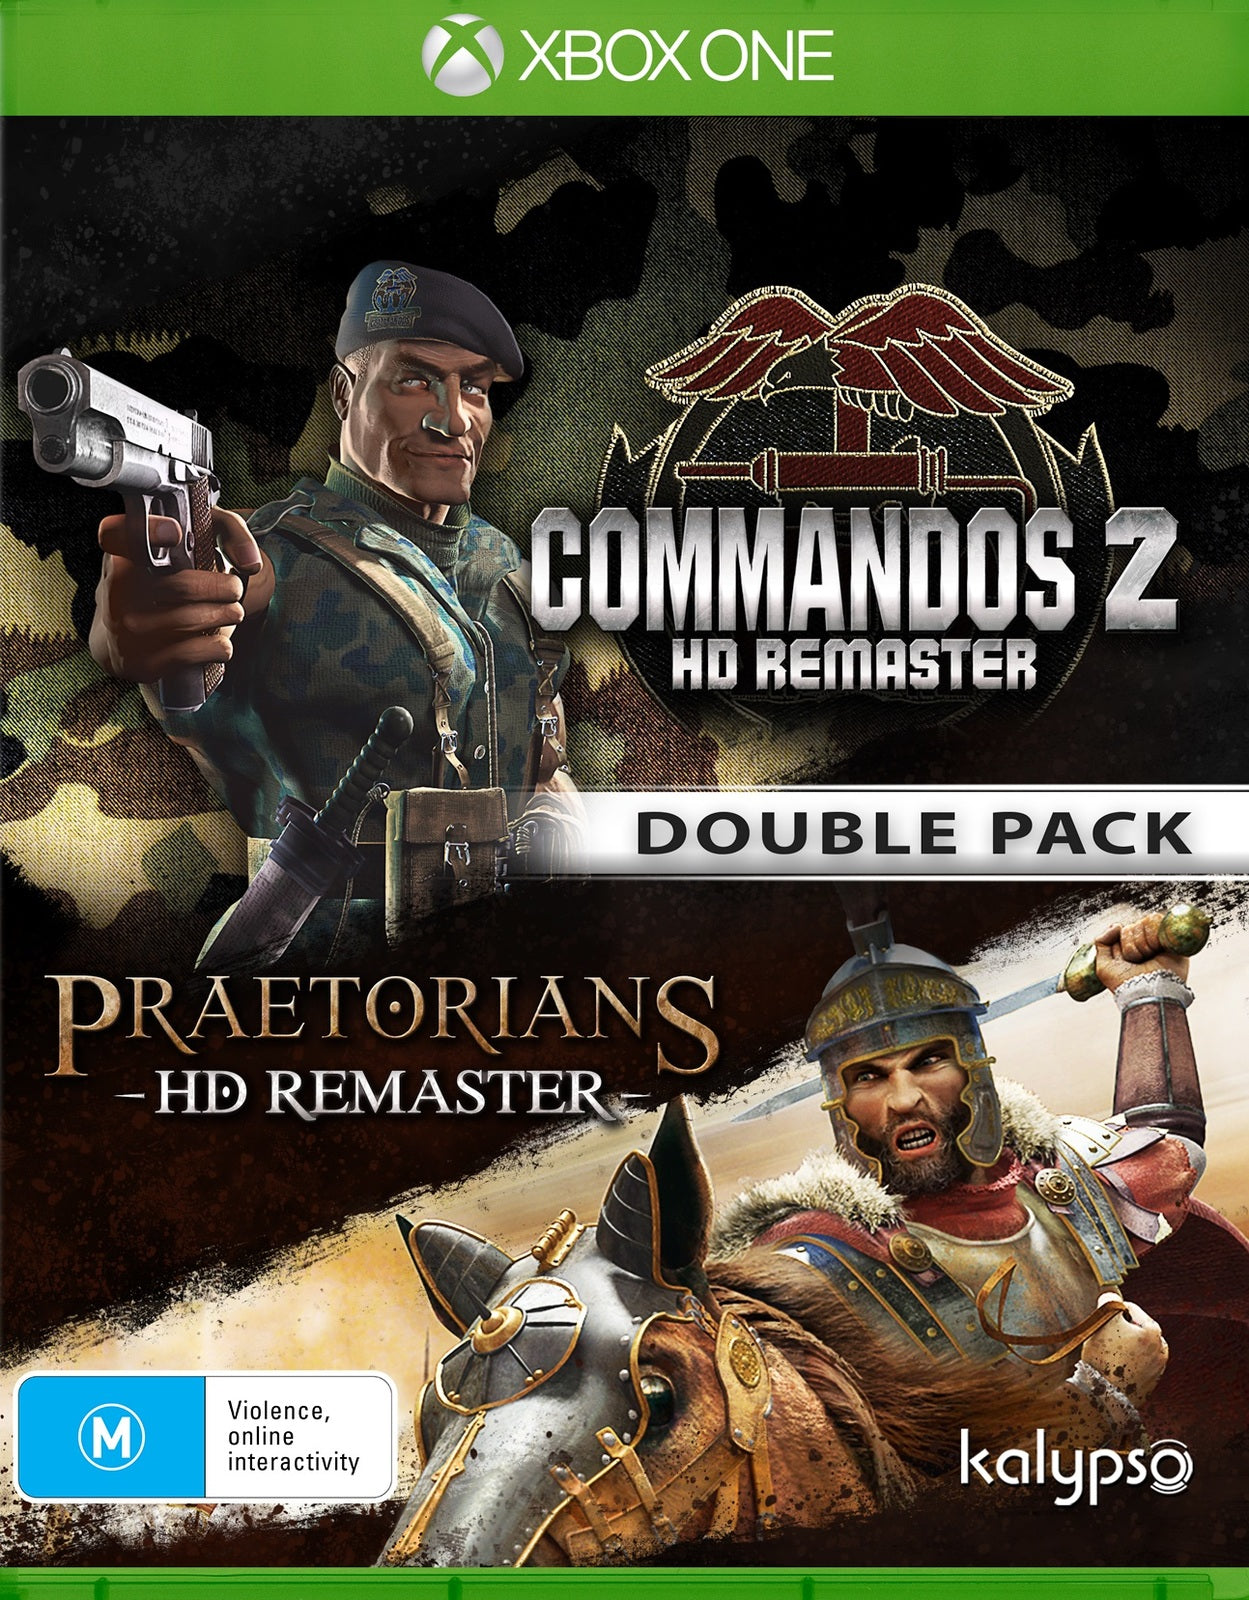 Commandos 2 & Praetorians Double Pack HD Remaster - Xbox One